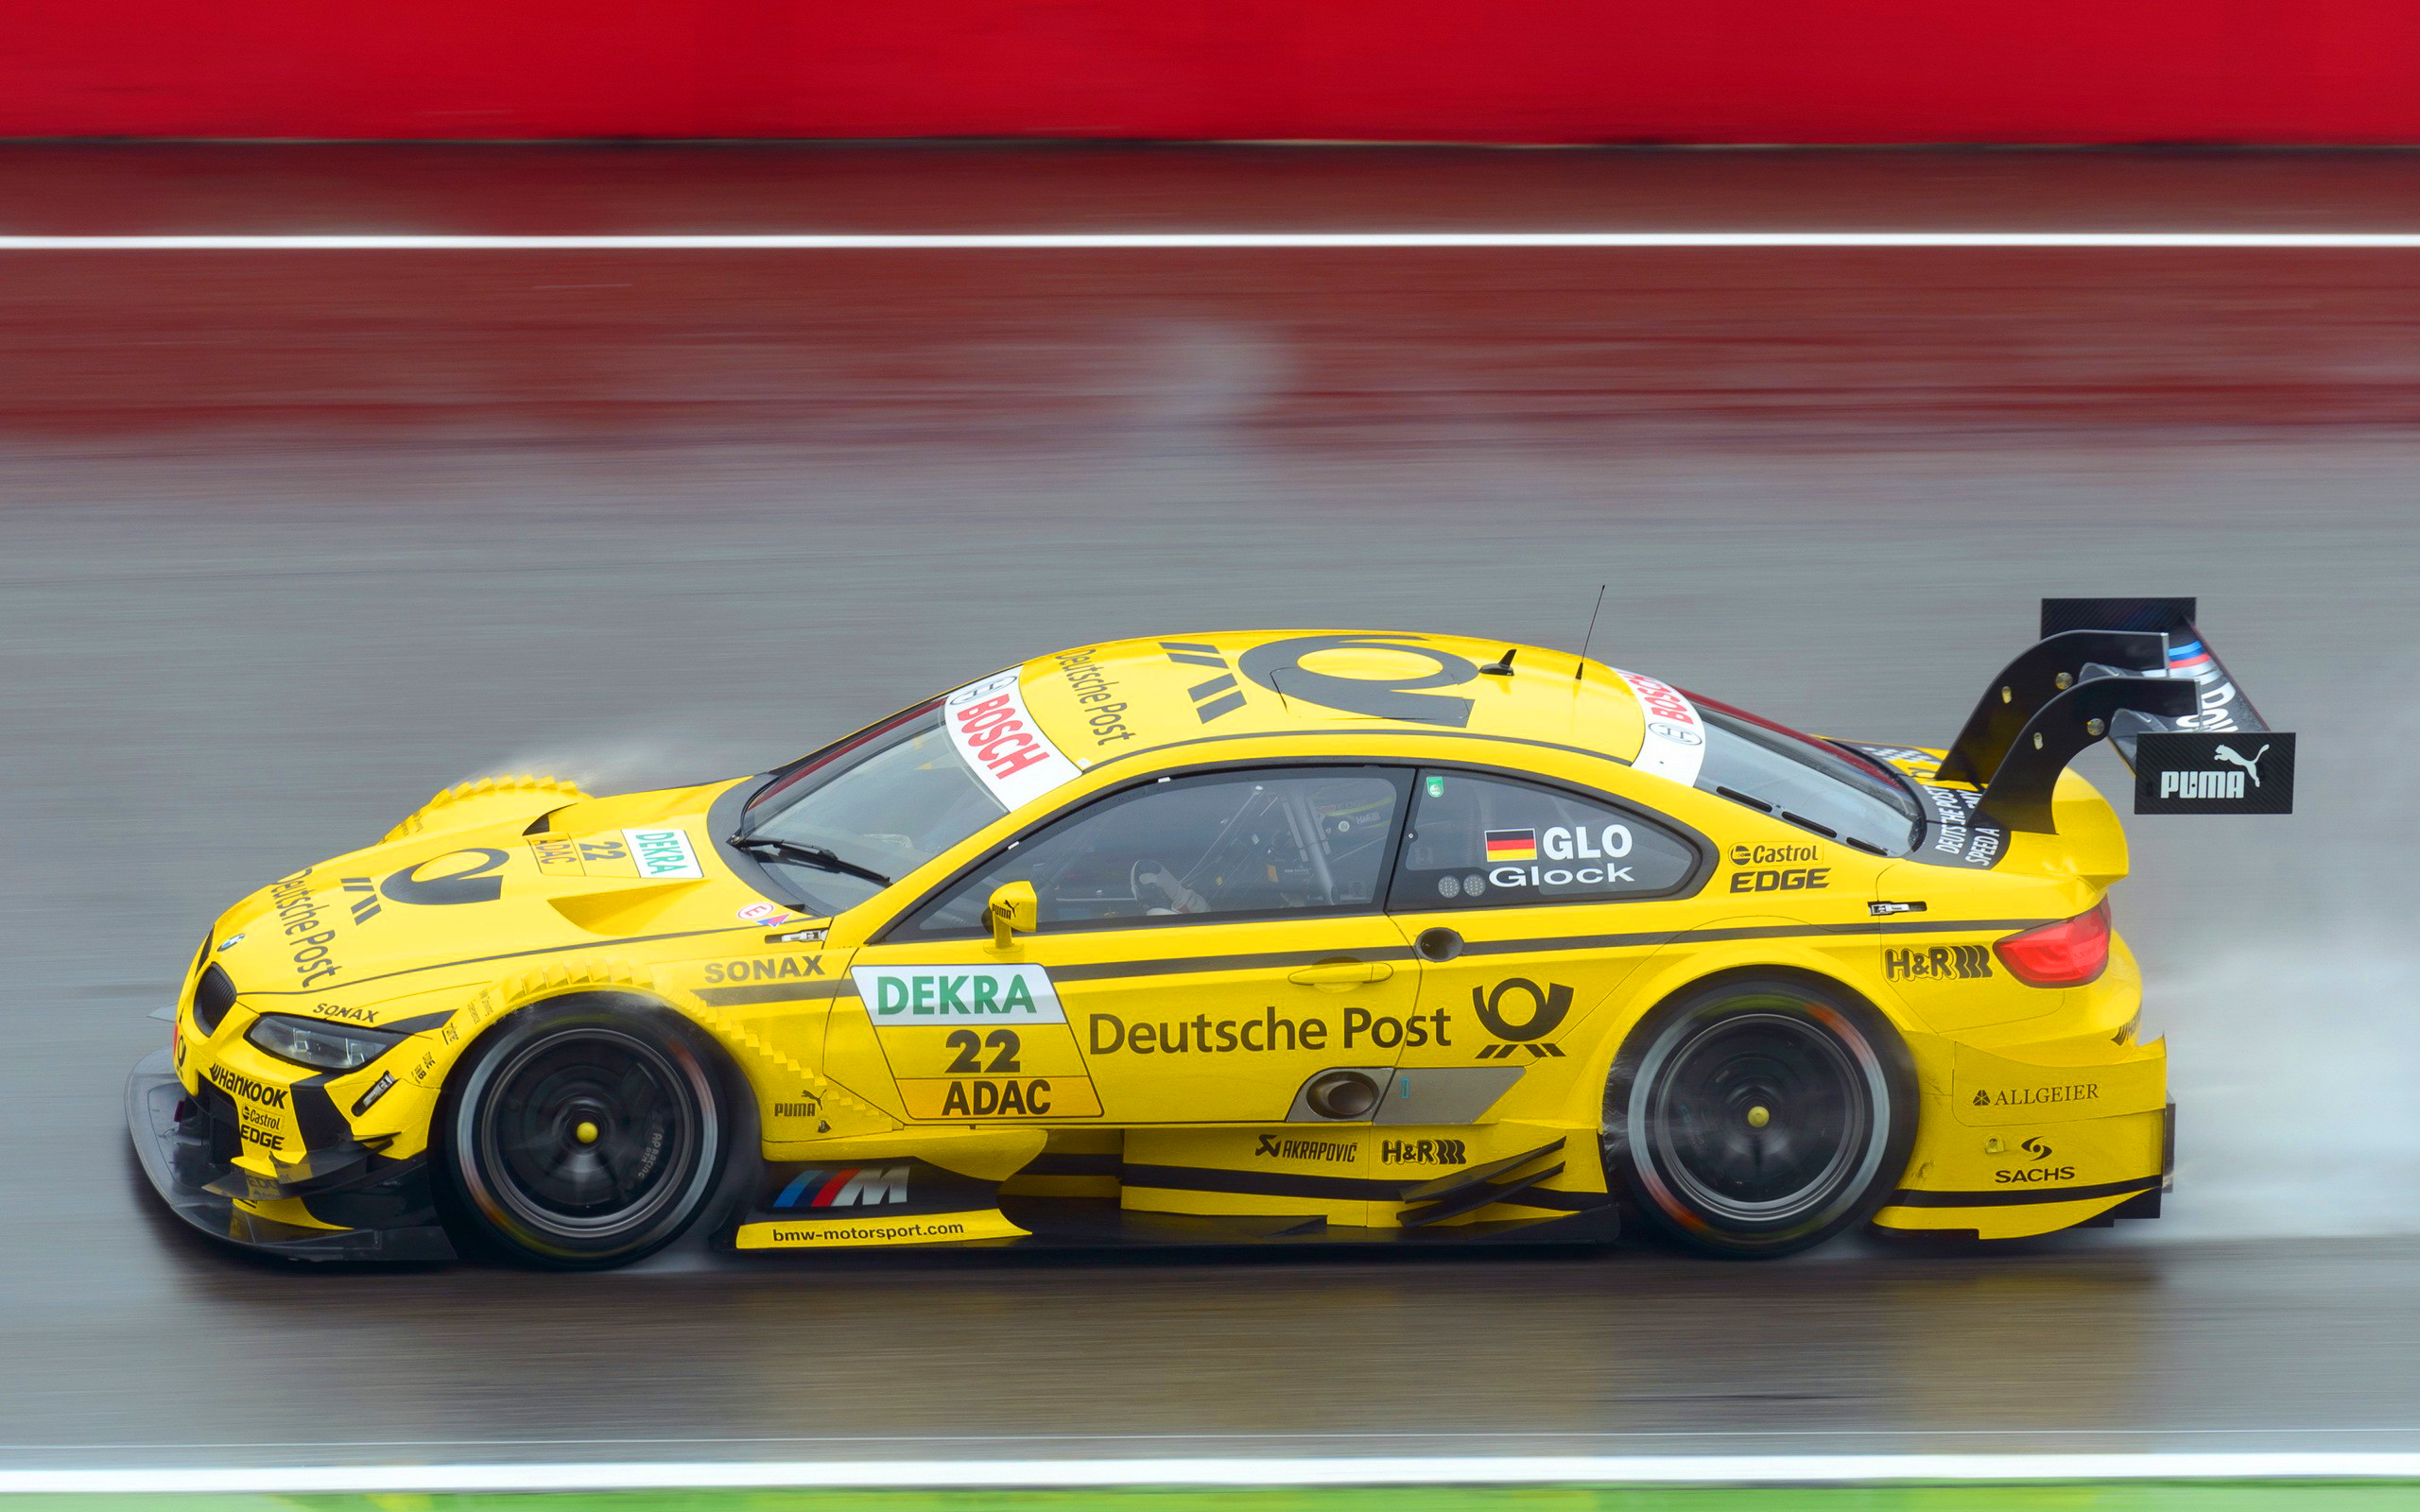 Bmw dtm racing car Wallpapers Pictures Photos Images · «